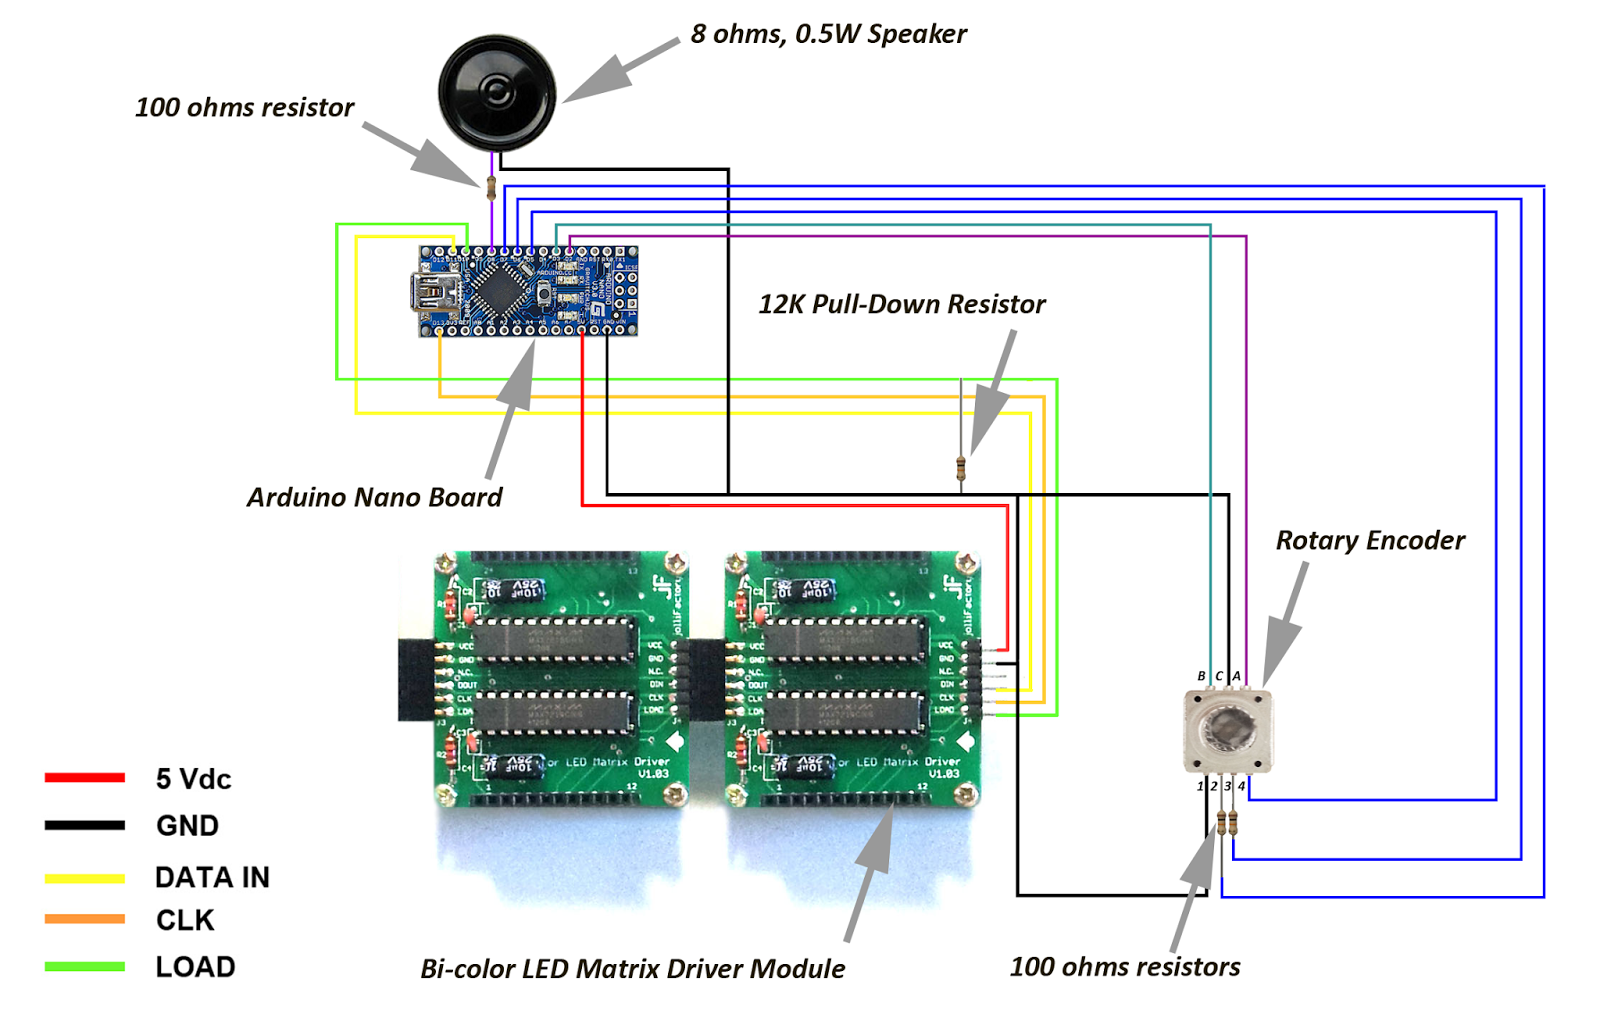 encoder wiring diagram encoder image wiring diagram incremental encoder and arduino wiring diagram abs wiring diagram on encoder wiring diagram